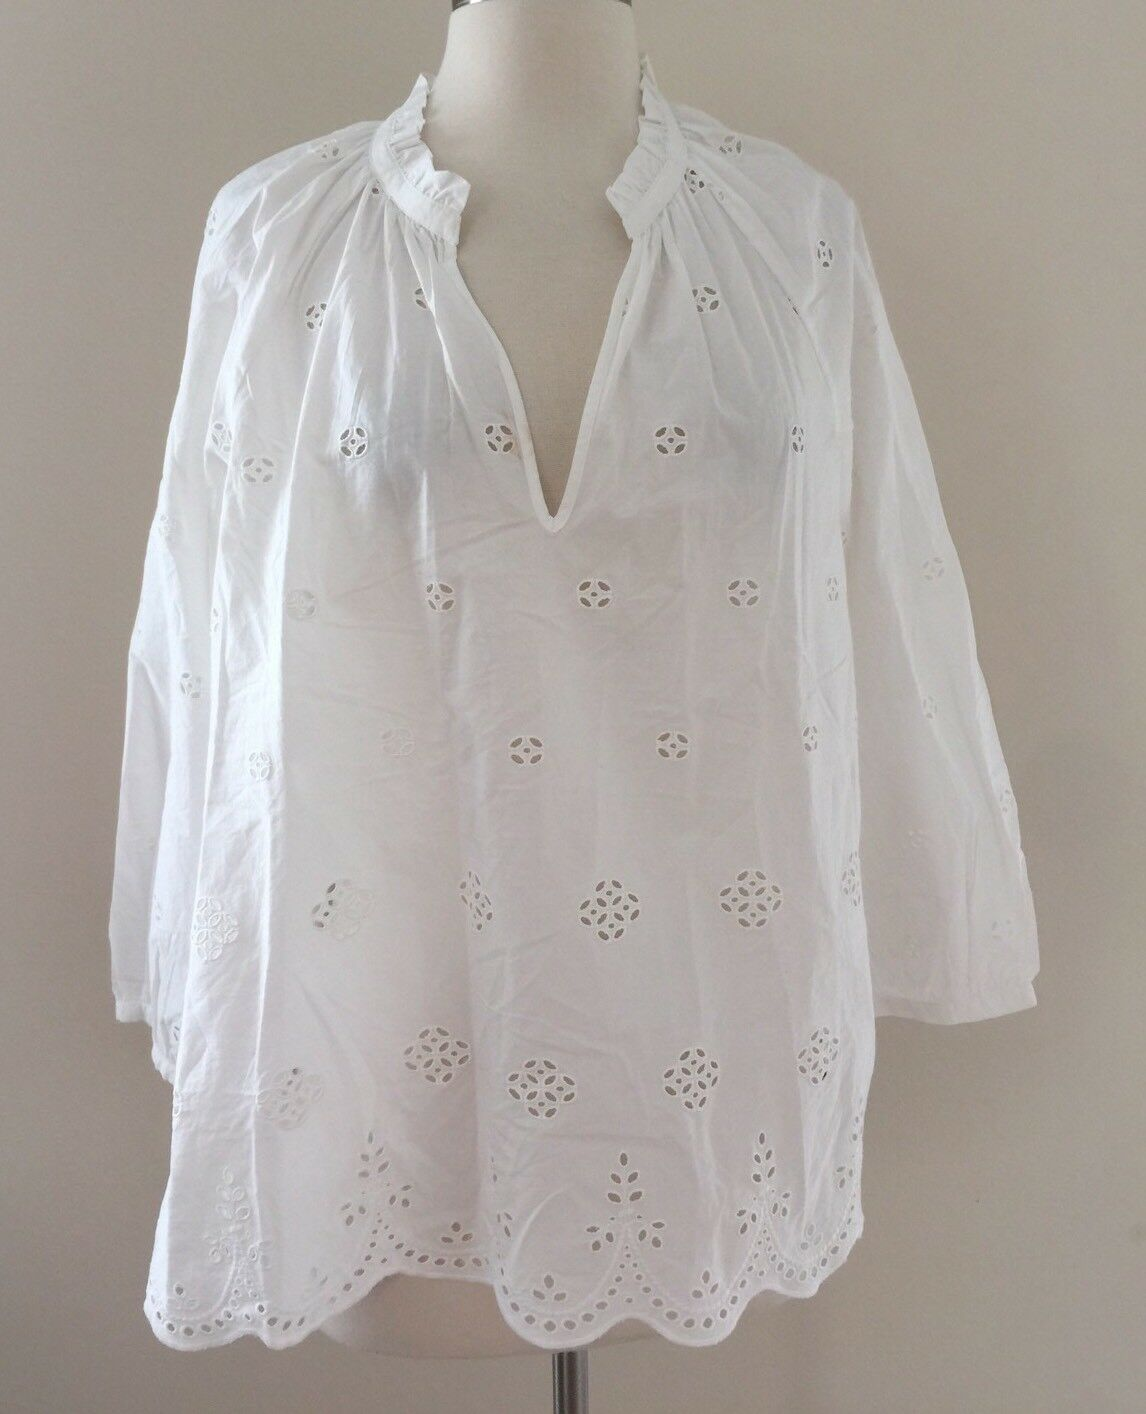 New Madewell Top Weiß Eyelet Popover Blouse Sz M Scalloped G1542  SPRING '17